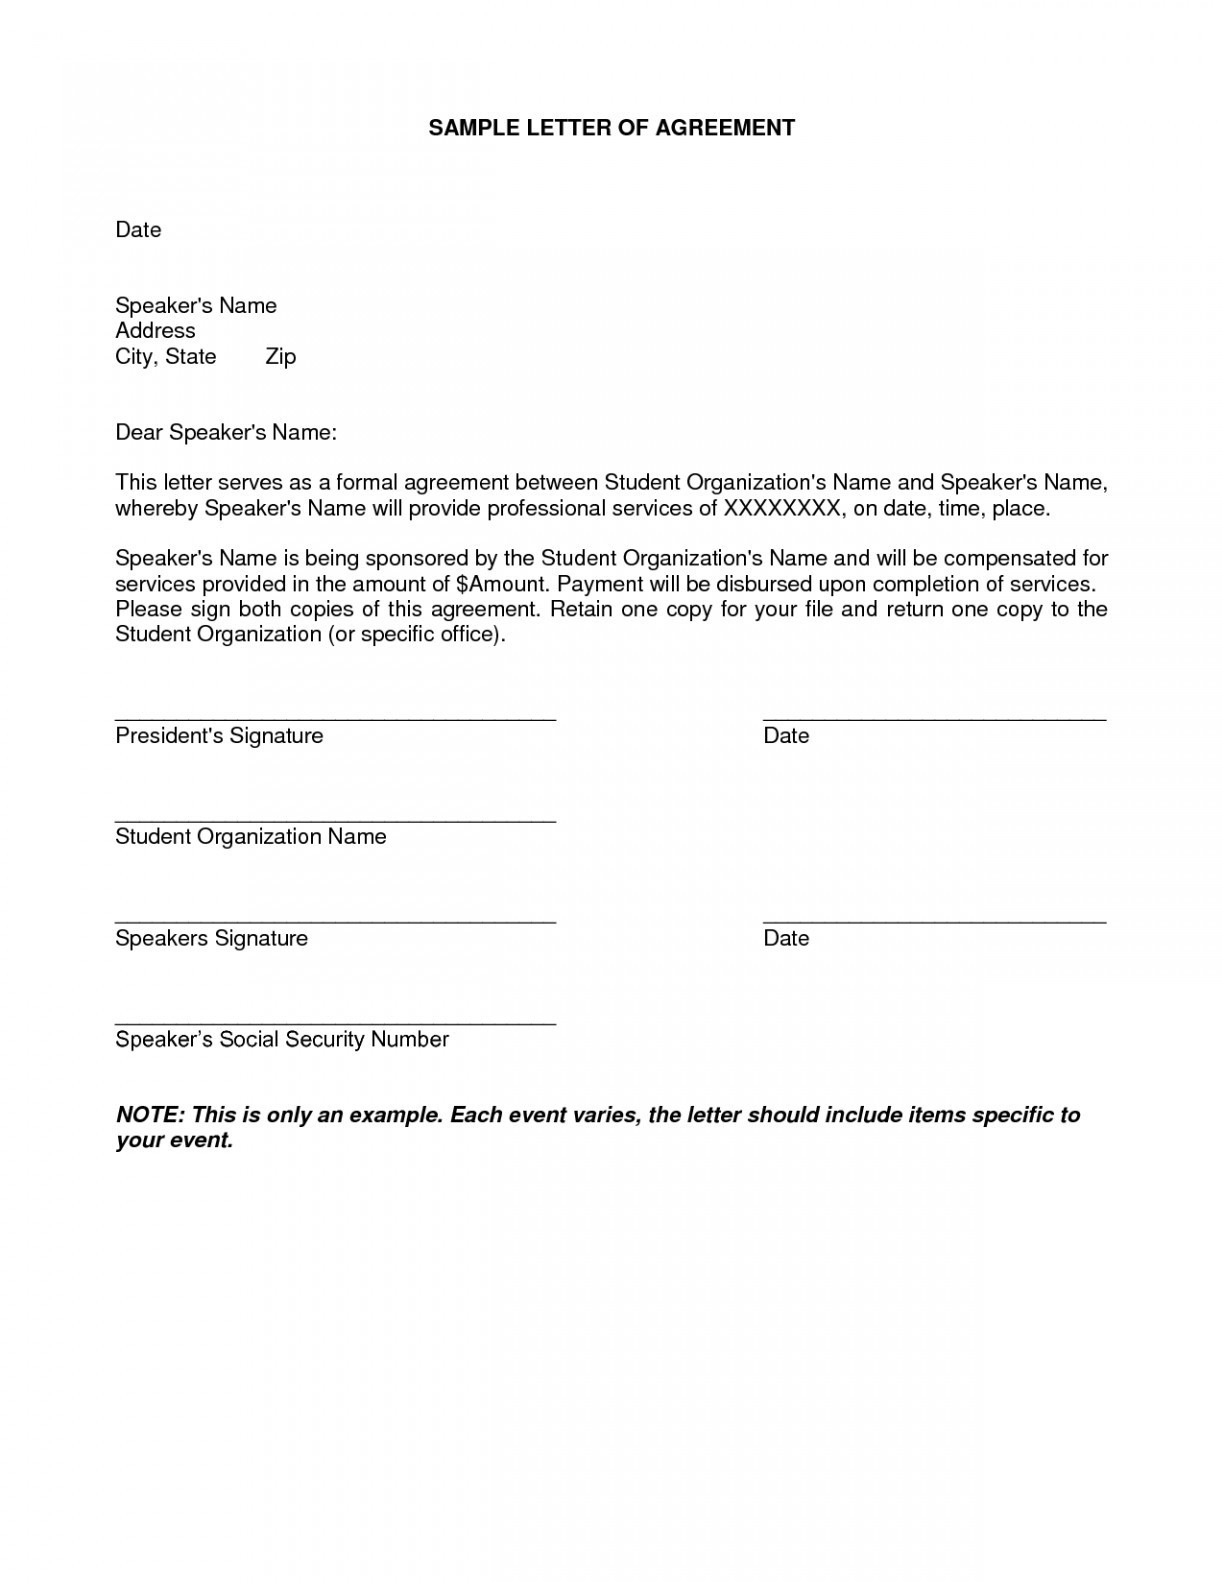 loan repayment letter template example-Sample Loan Repayment Agreement 20-h